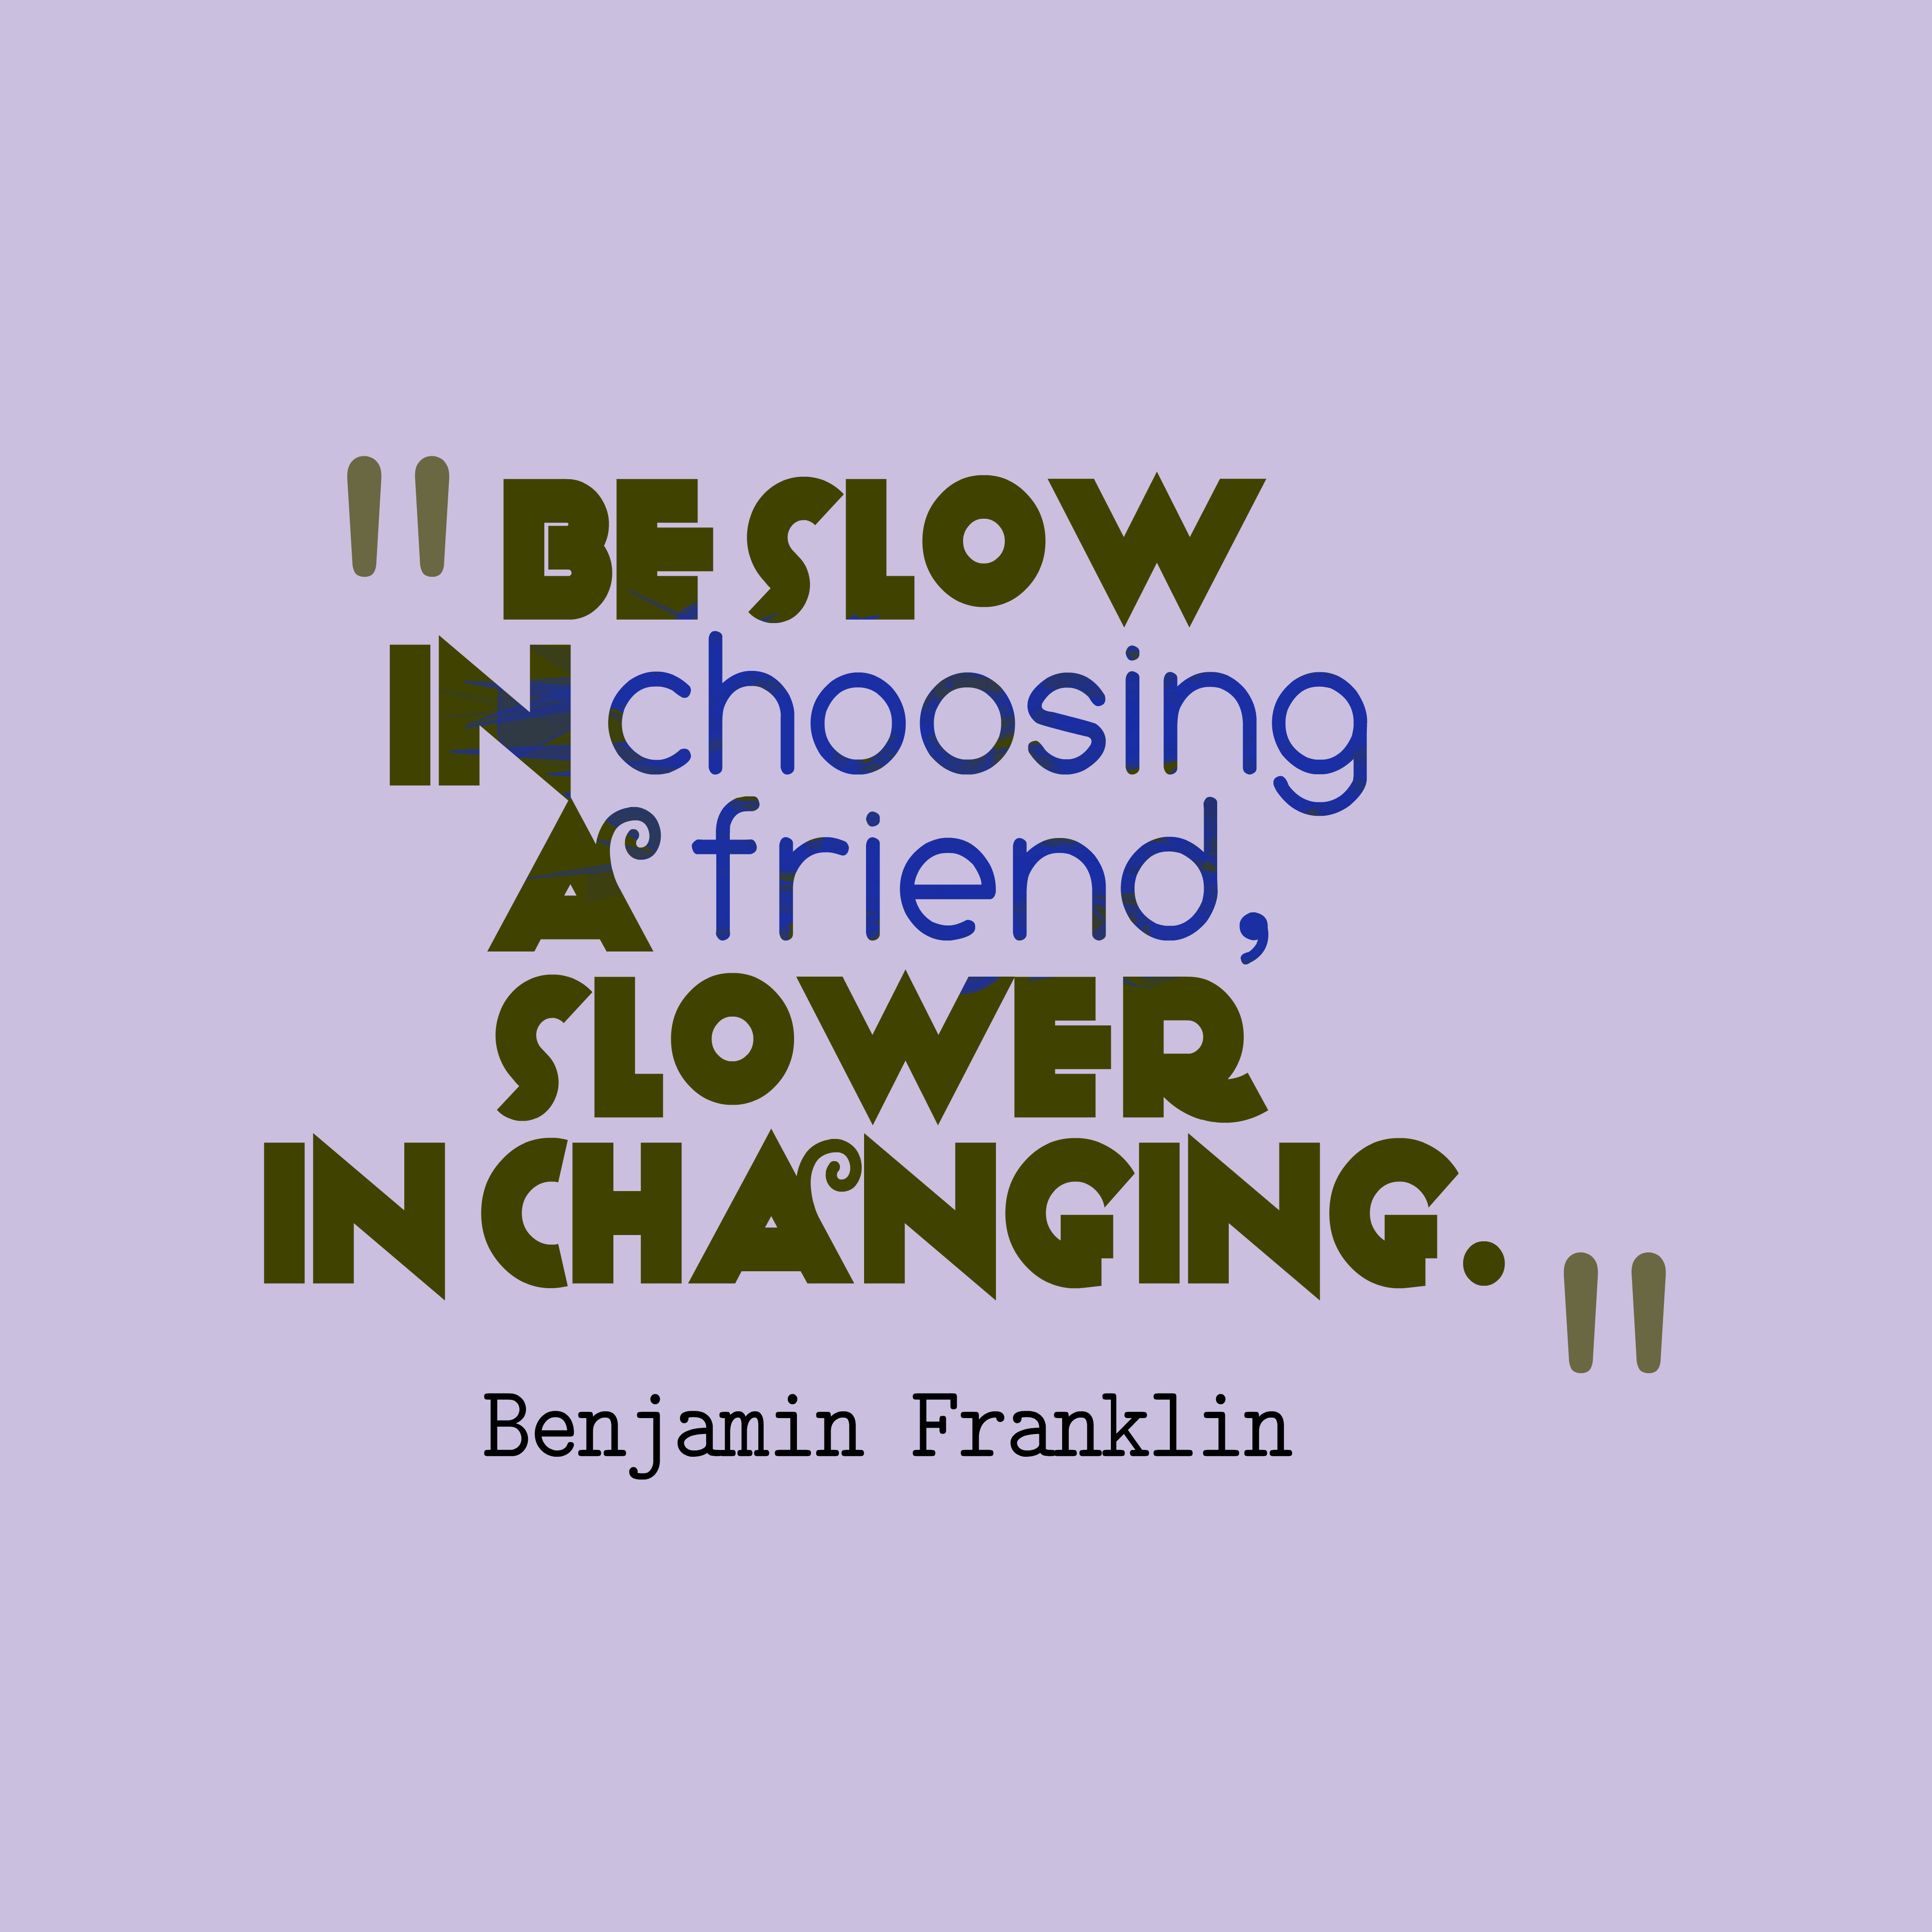 Quotes image of Be slow in choosing a friend, slower in changing.